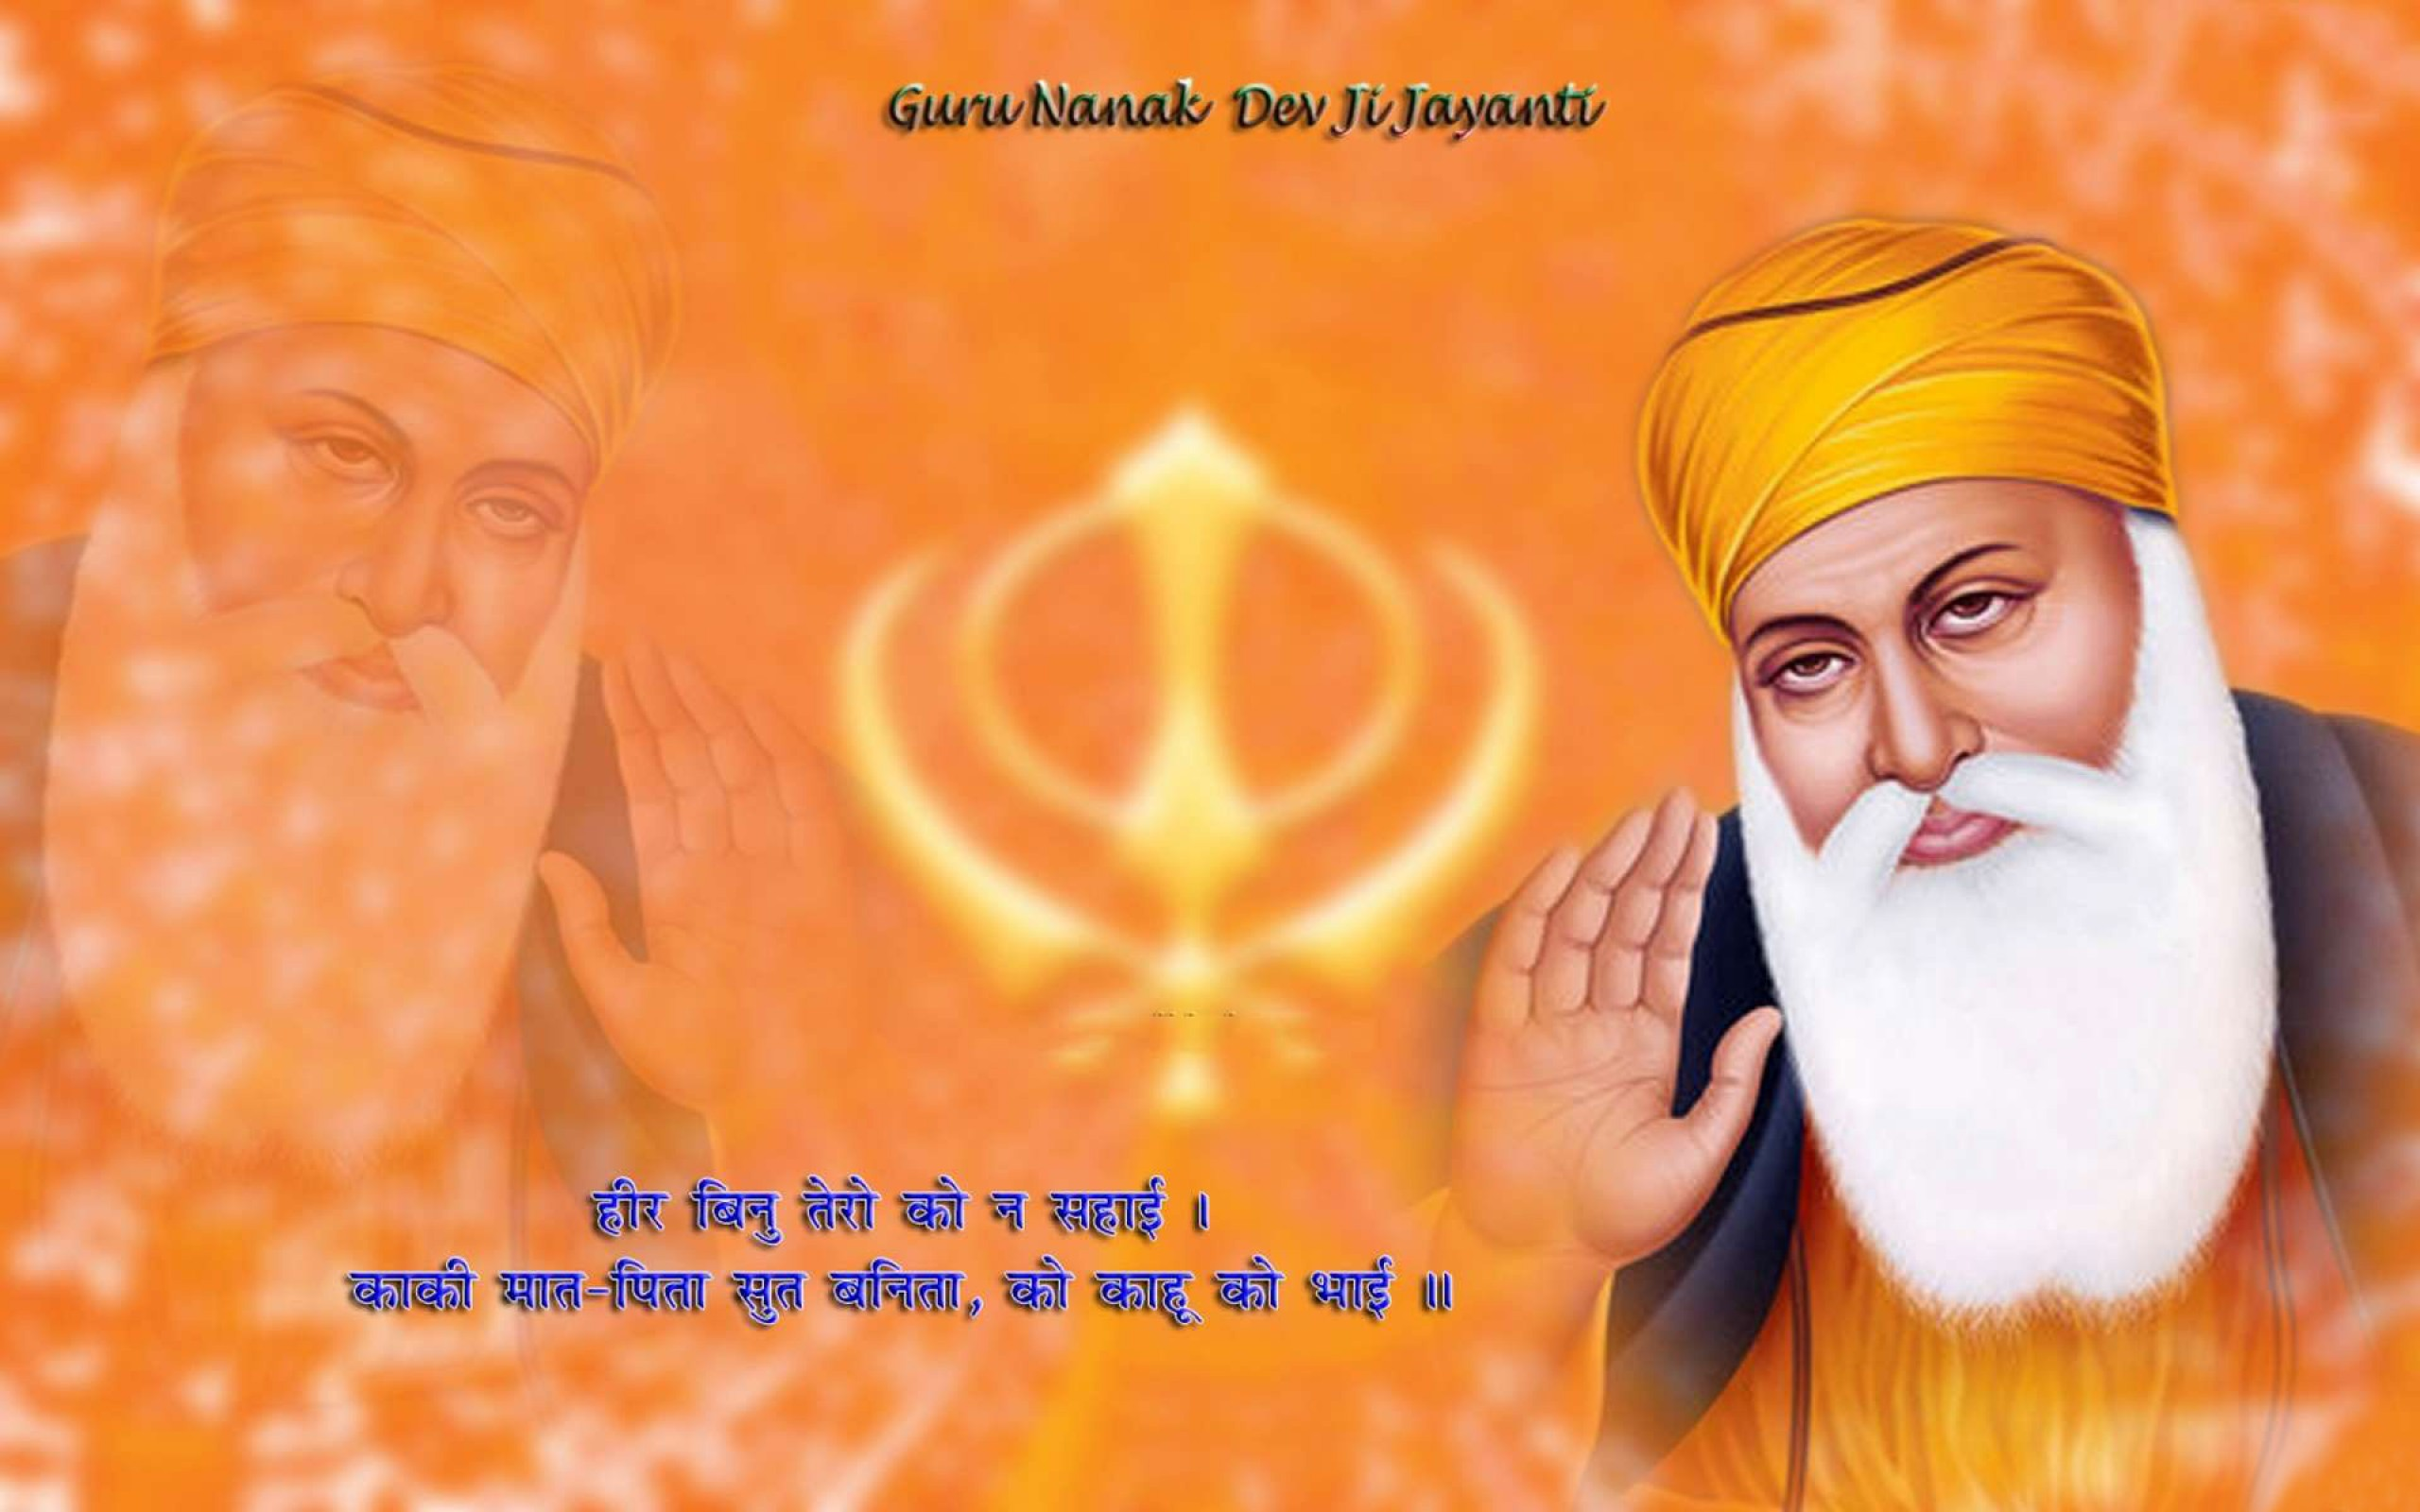 Sikh Animated Wallpaper Top 35 Gurunanak Jayanti Wishes Messages Images